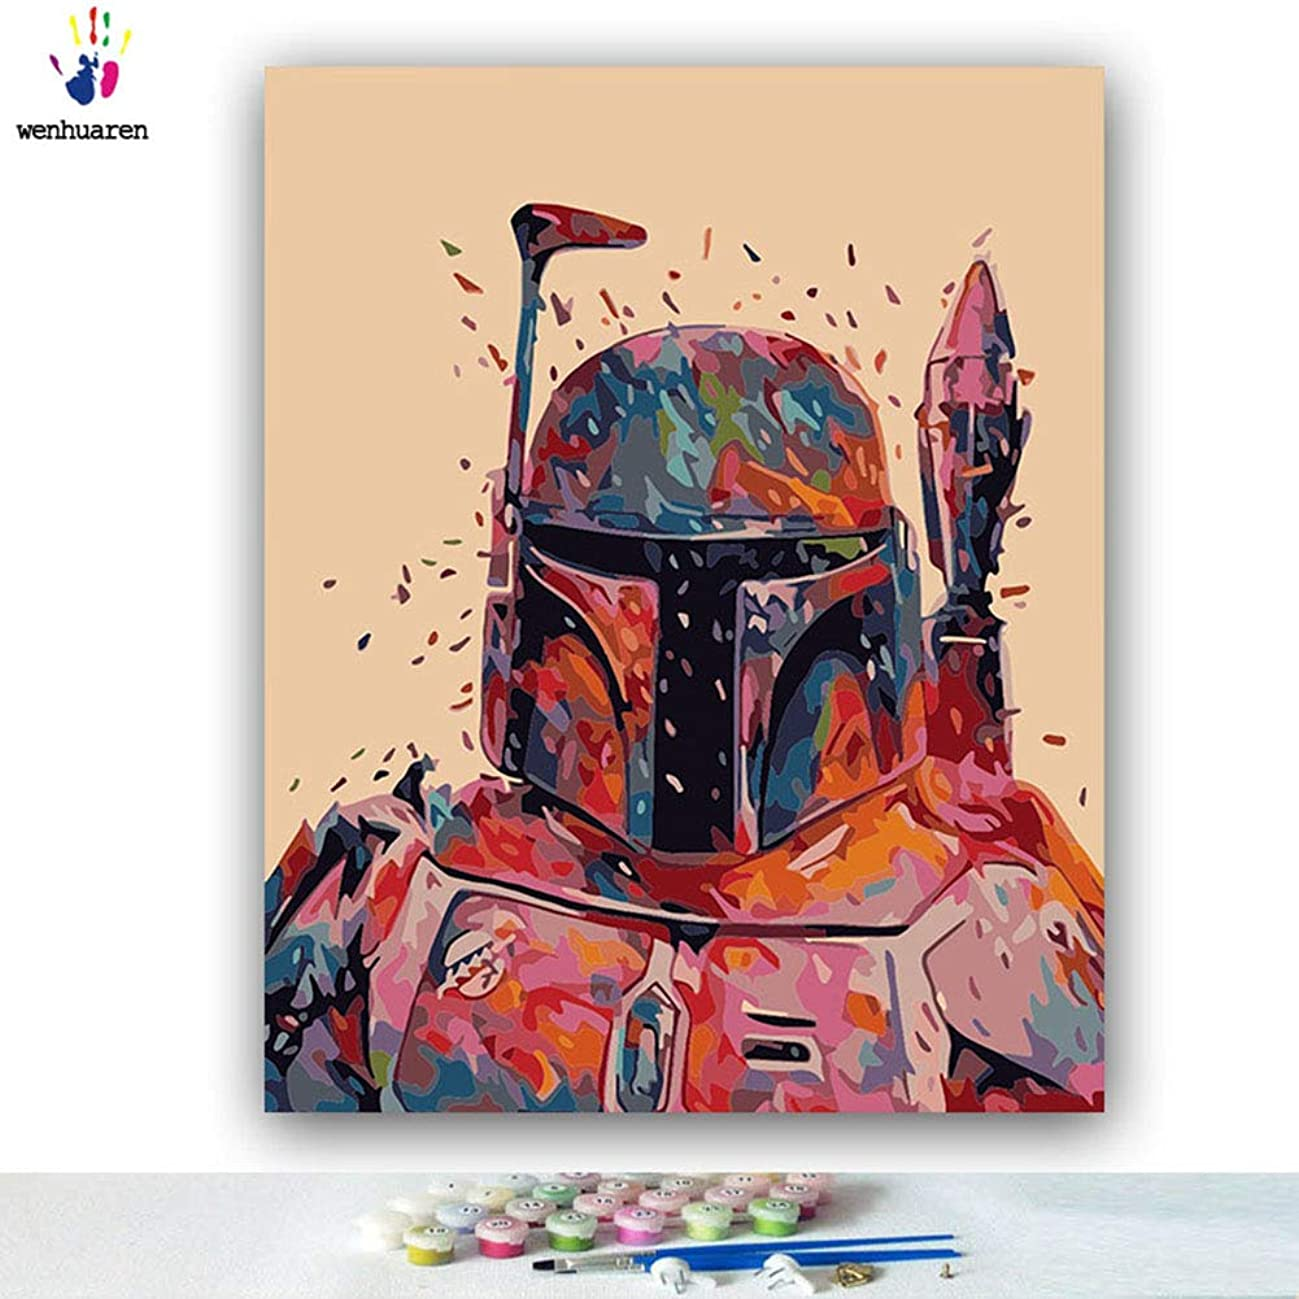 Paint by Number Kits Canvas DIY Oil Painting for Kids, Students, Adults Beginner with Brushes and Acrylic Pigment -Star Wars Movie Character Darth Vader Kylo Ren (21160, 16x20 no Frame)